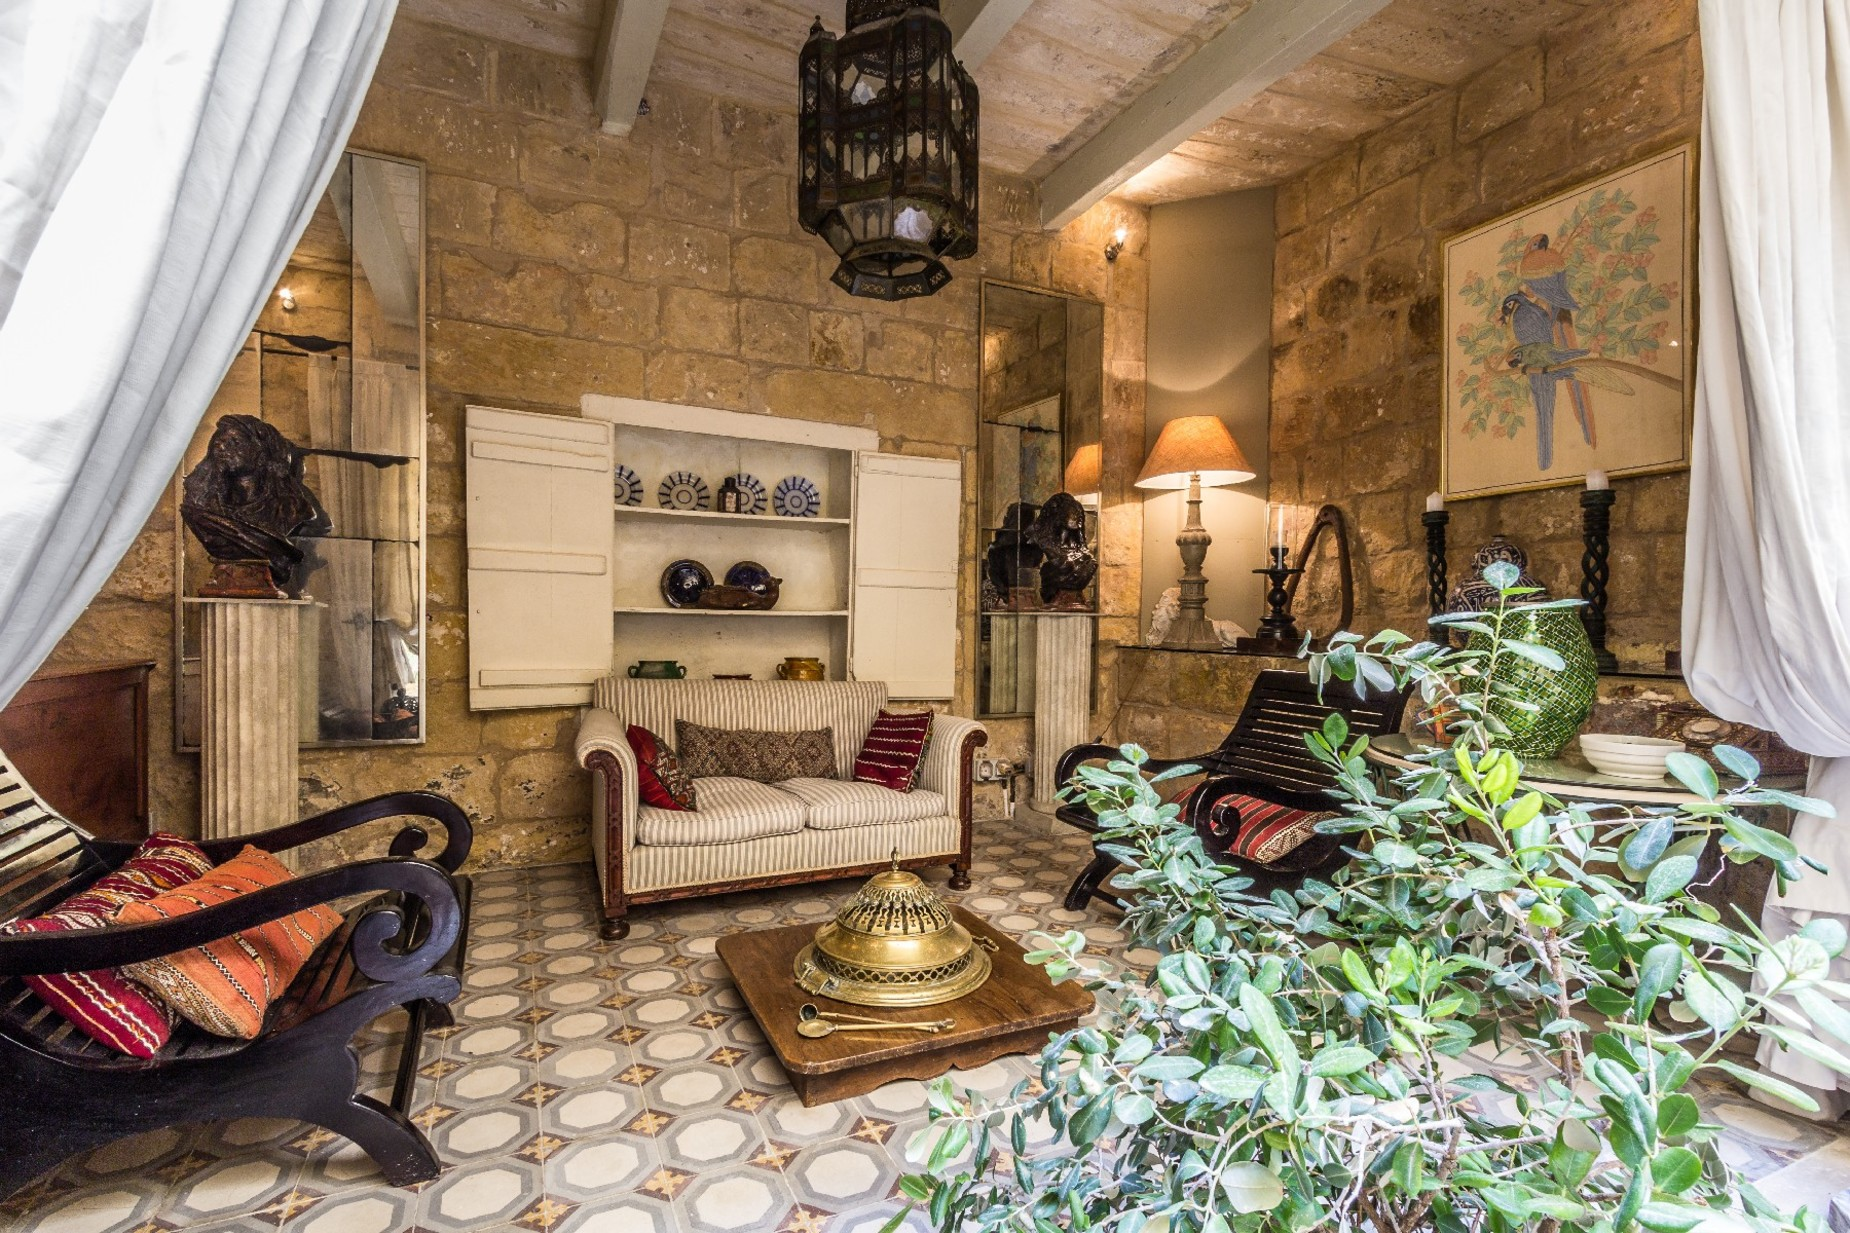 5 bed Town House For Sale in Cospicua, Cospicua - thumb 5